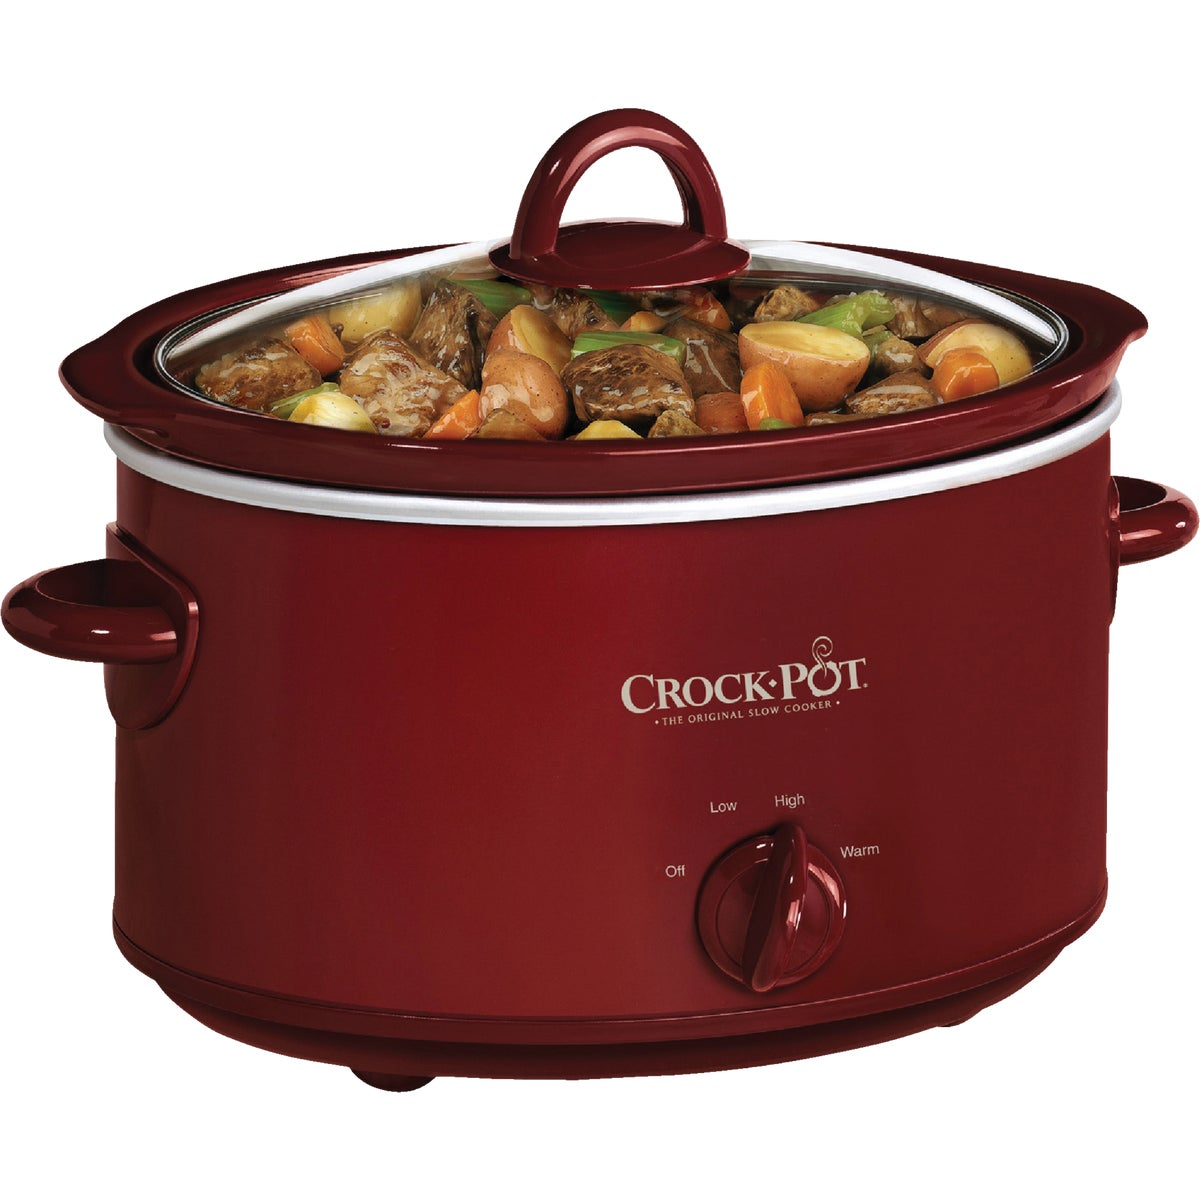 RED 4QT OVAL SLOW COOKER - SCV401-TR by Jarden Cs